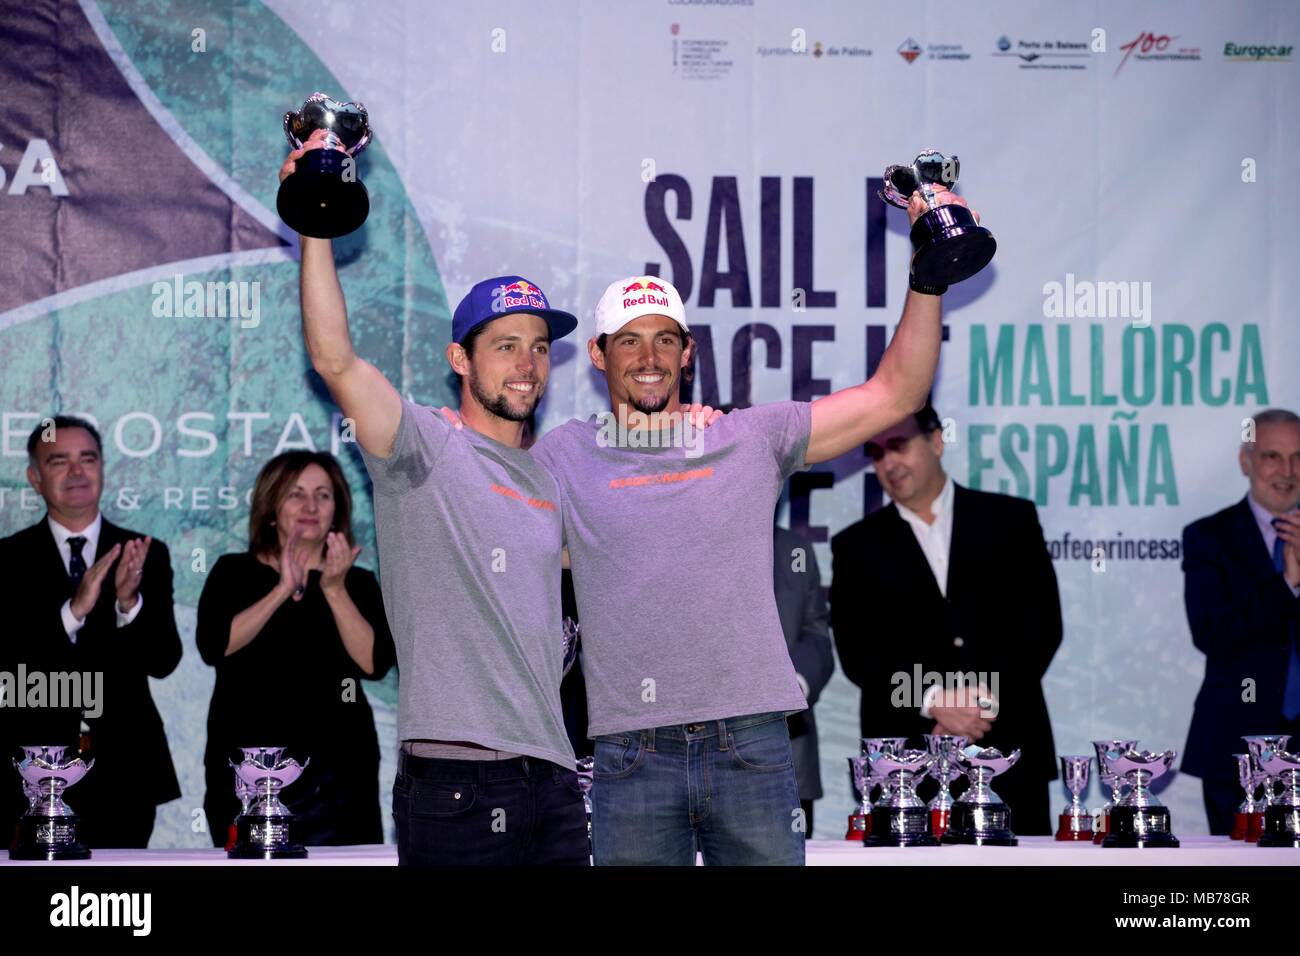 Winners in the 49er category, Argentinians Yago Lange (L) and Klaus Lange, pose during the 49th Princess Sofia Sailing Trophy awarding ceremony at Palma's Bay in Majorca, Spain, 07 April 2018. EFE/Lliteres - Stock Image